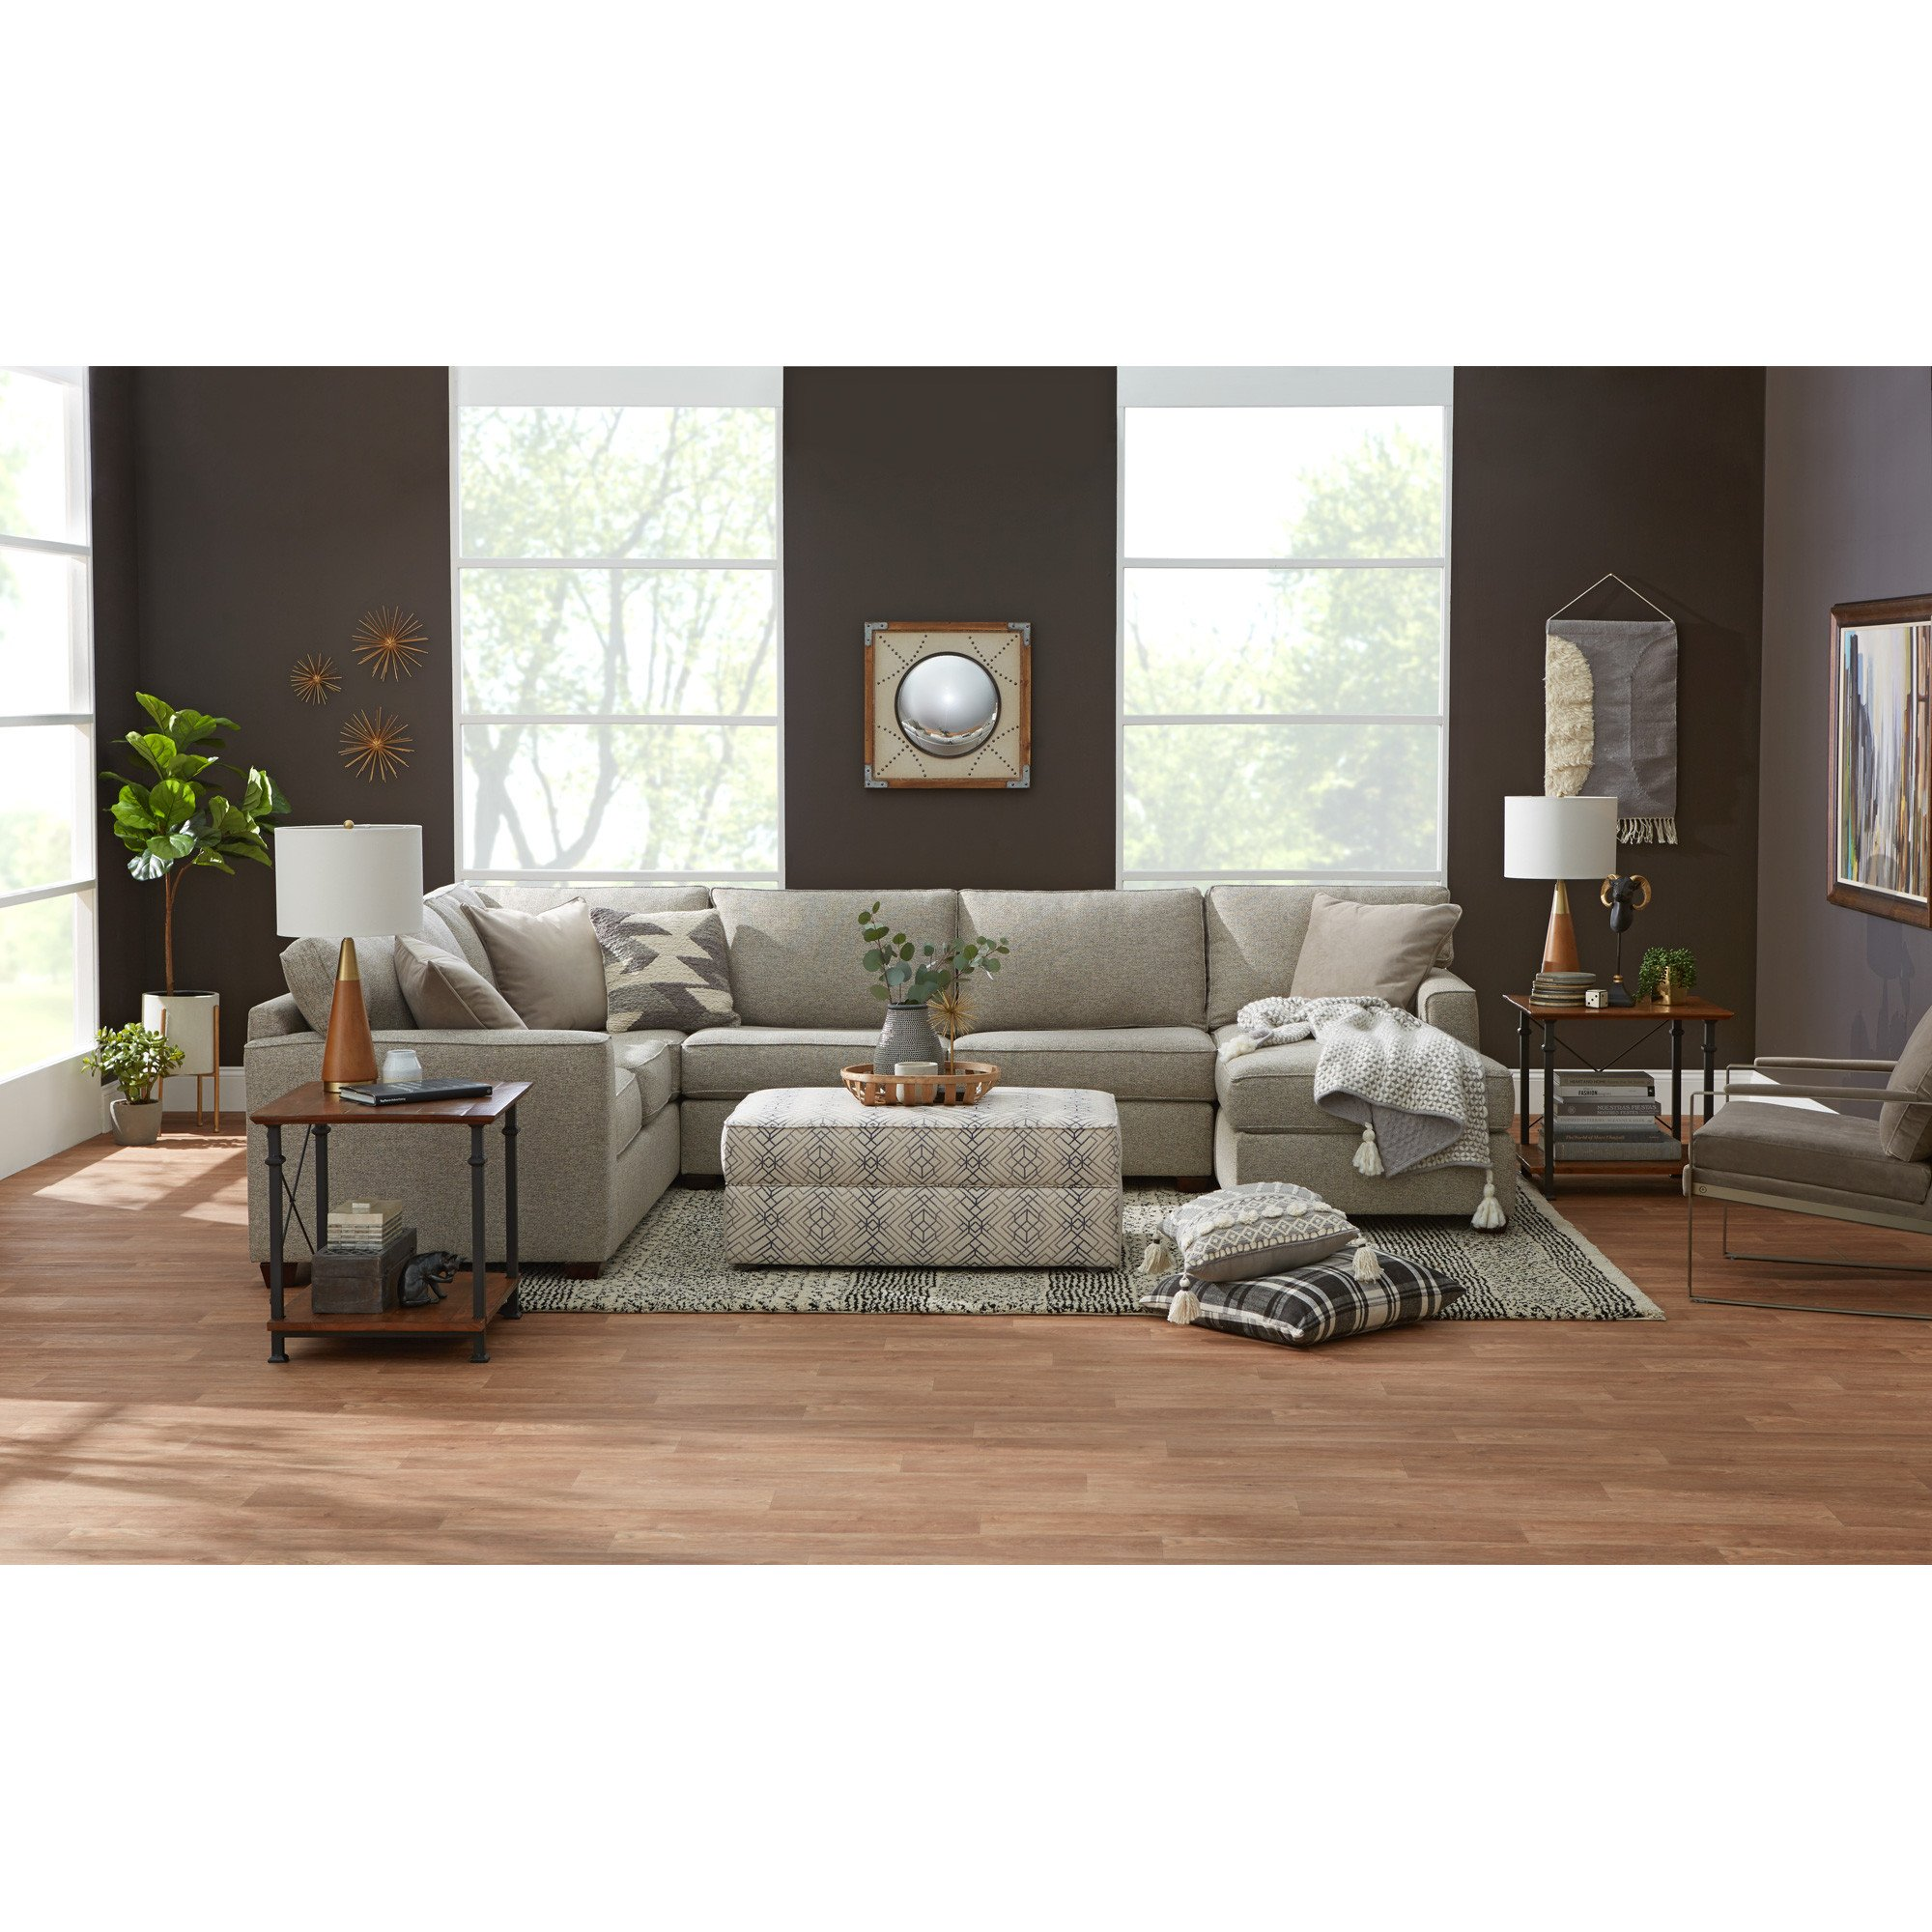 Jennifer Convertibles Bedroom Set Fresh Rise 3 Piece Right Sectional Living Rooms